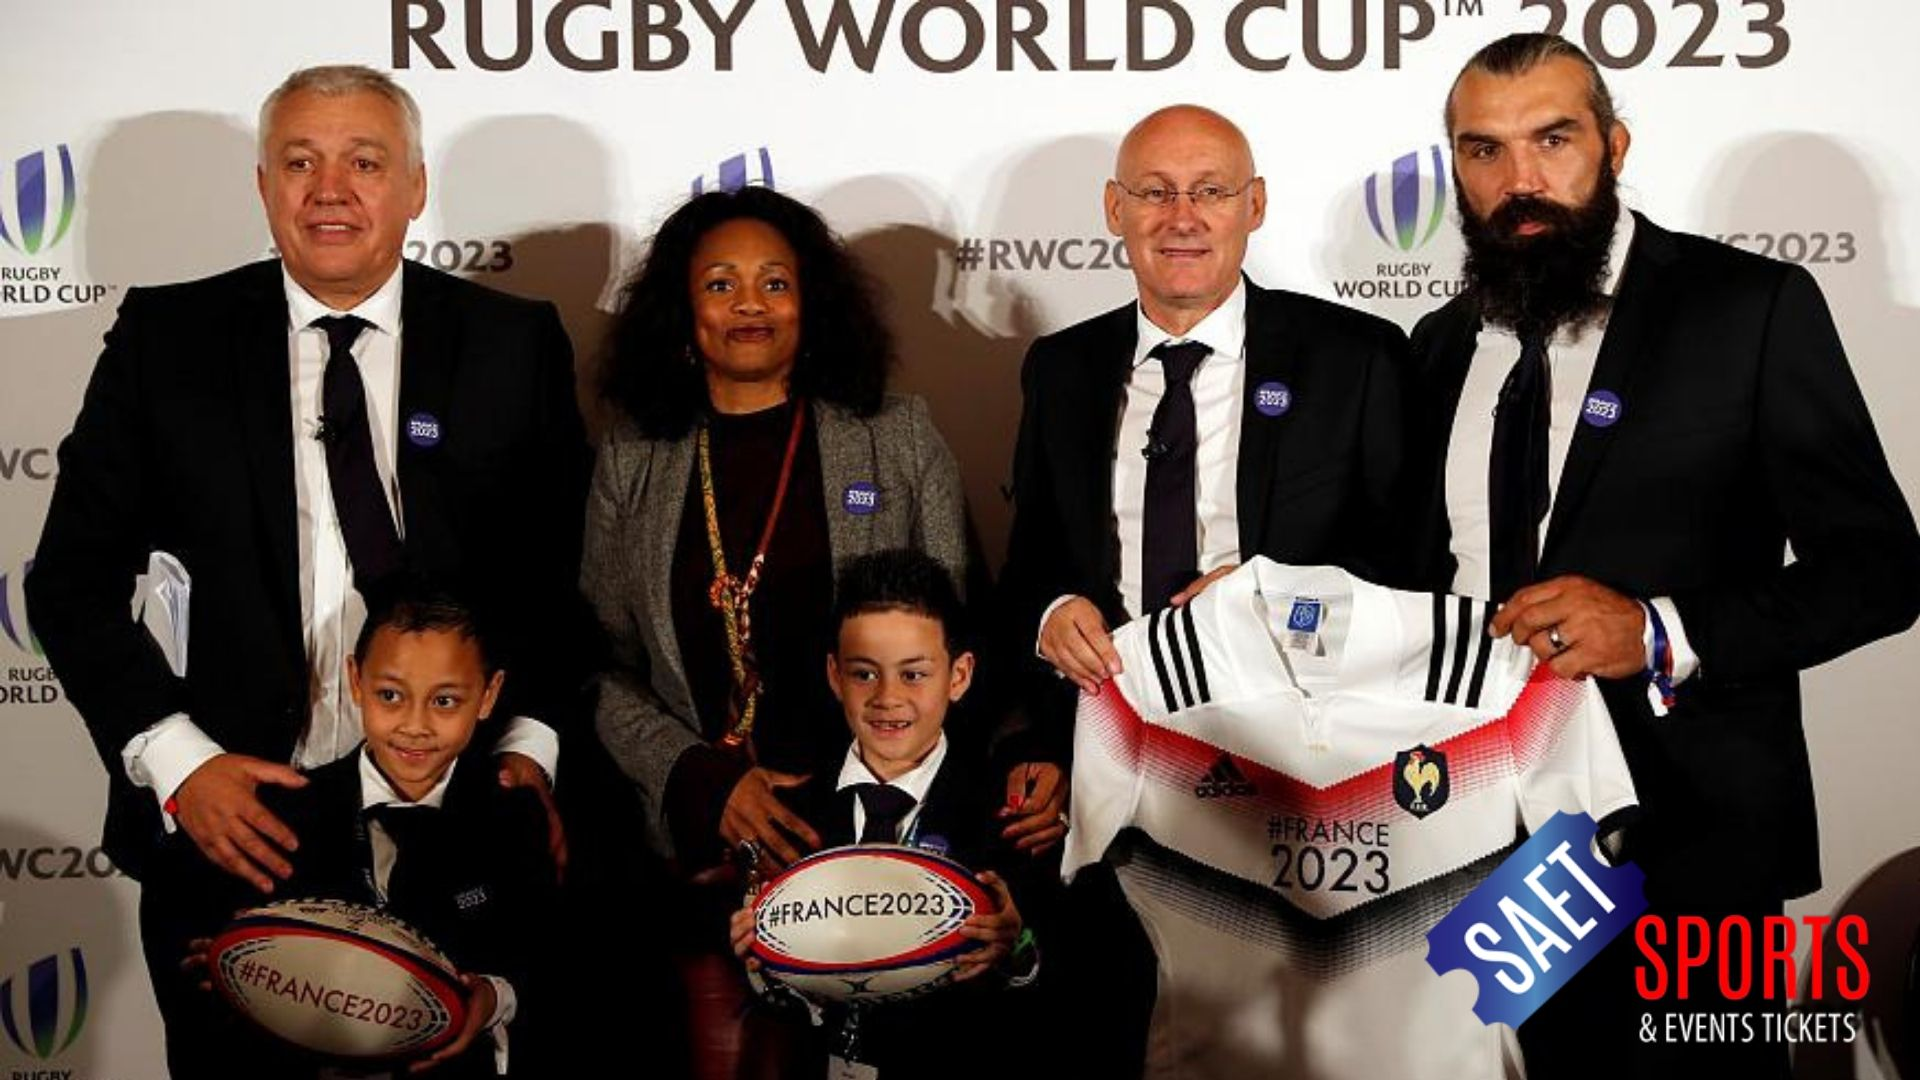 France Is Preparing To Host Rugby World Cup 2023 Https Www Sportsandeventstickets Com Rugby Tickets Rugby Rugby World Cup Rugby Tickets Rugby World Cup 2023